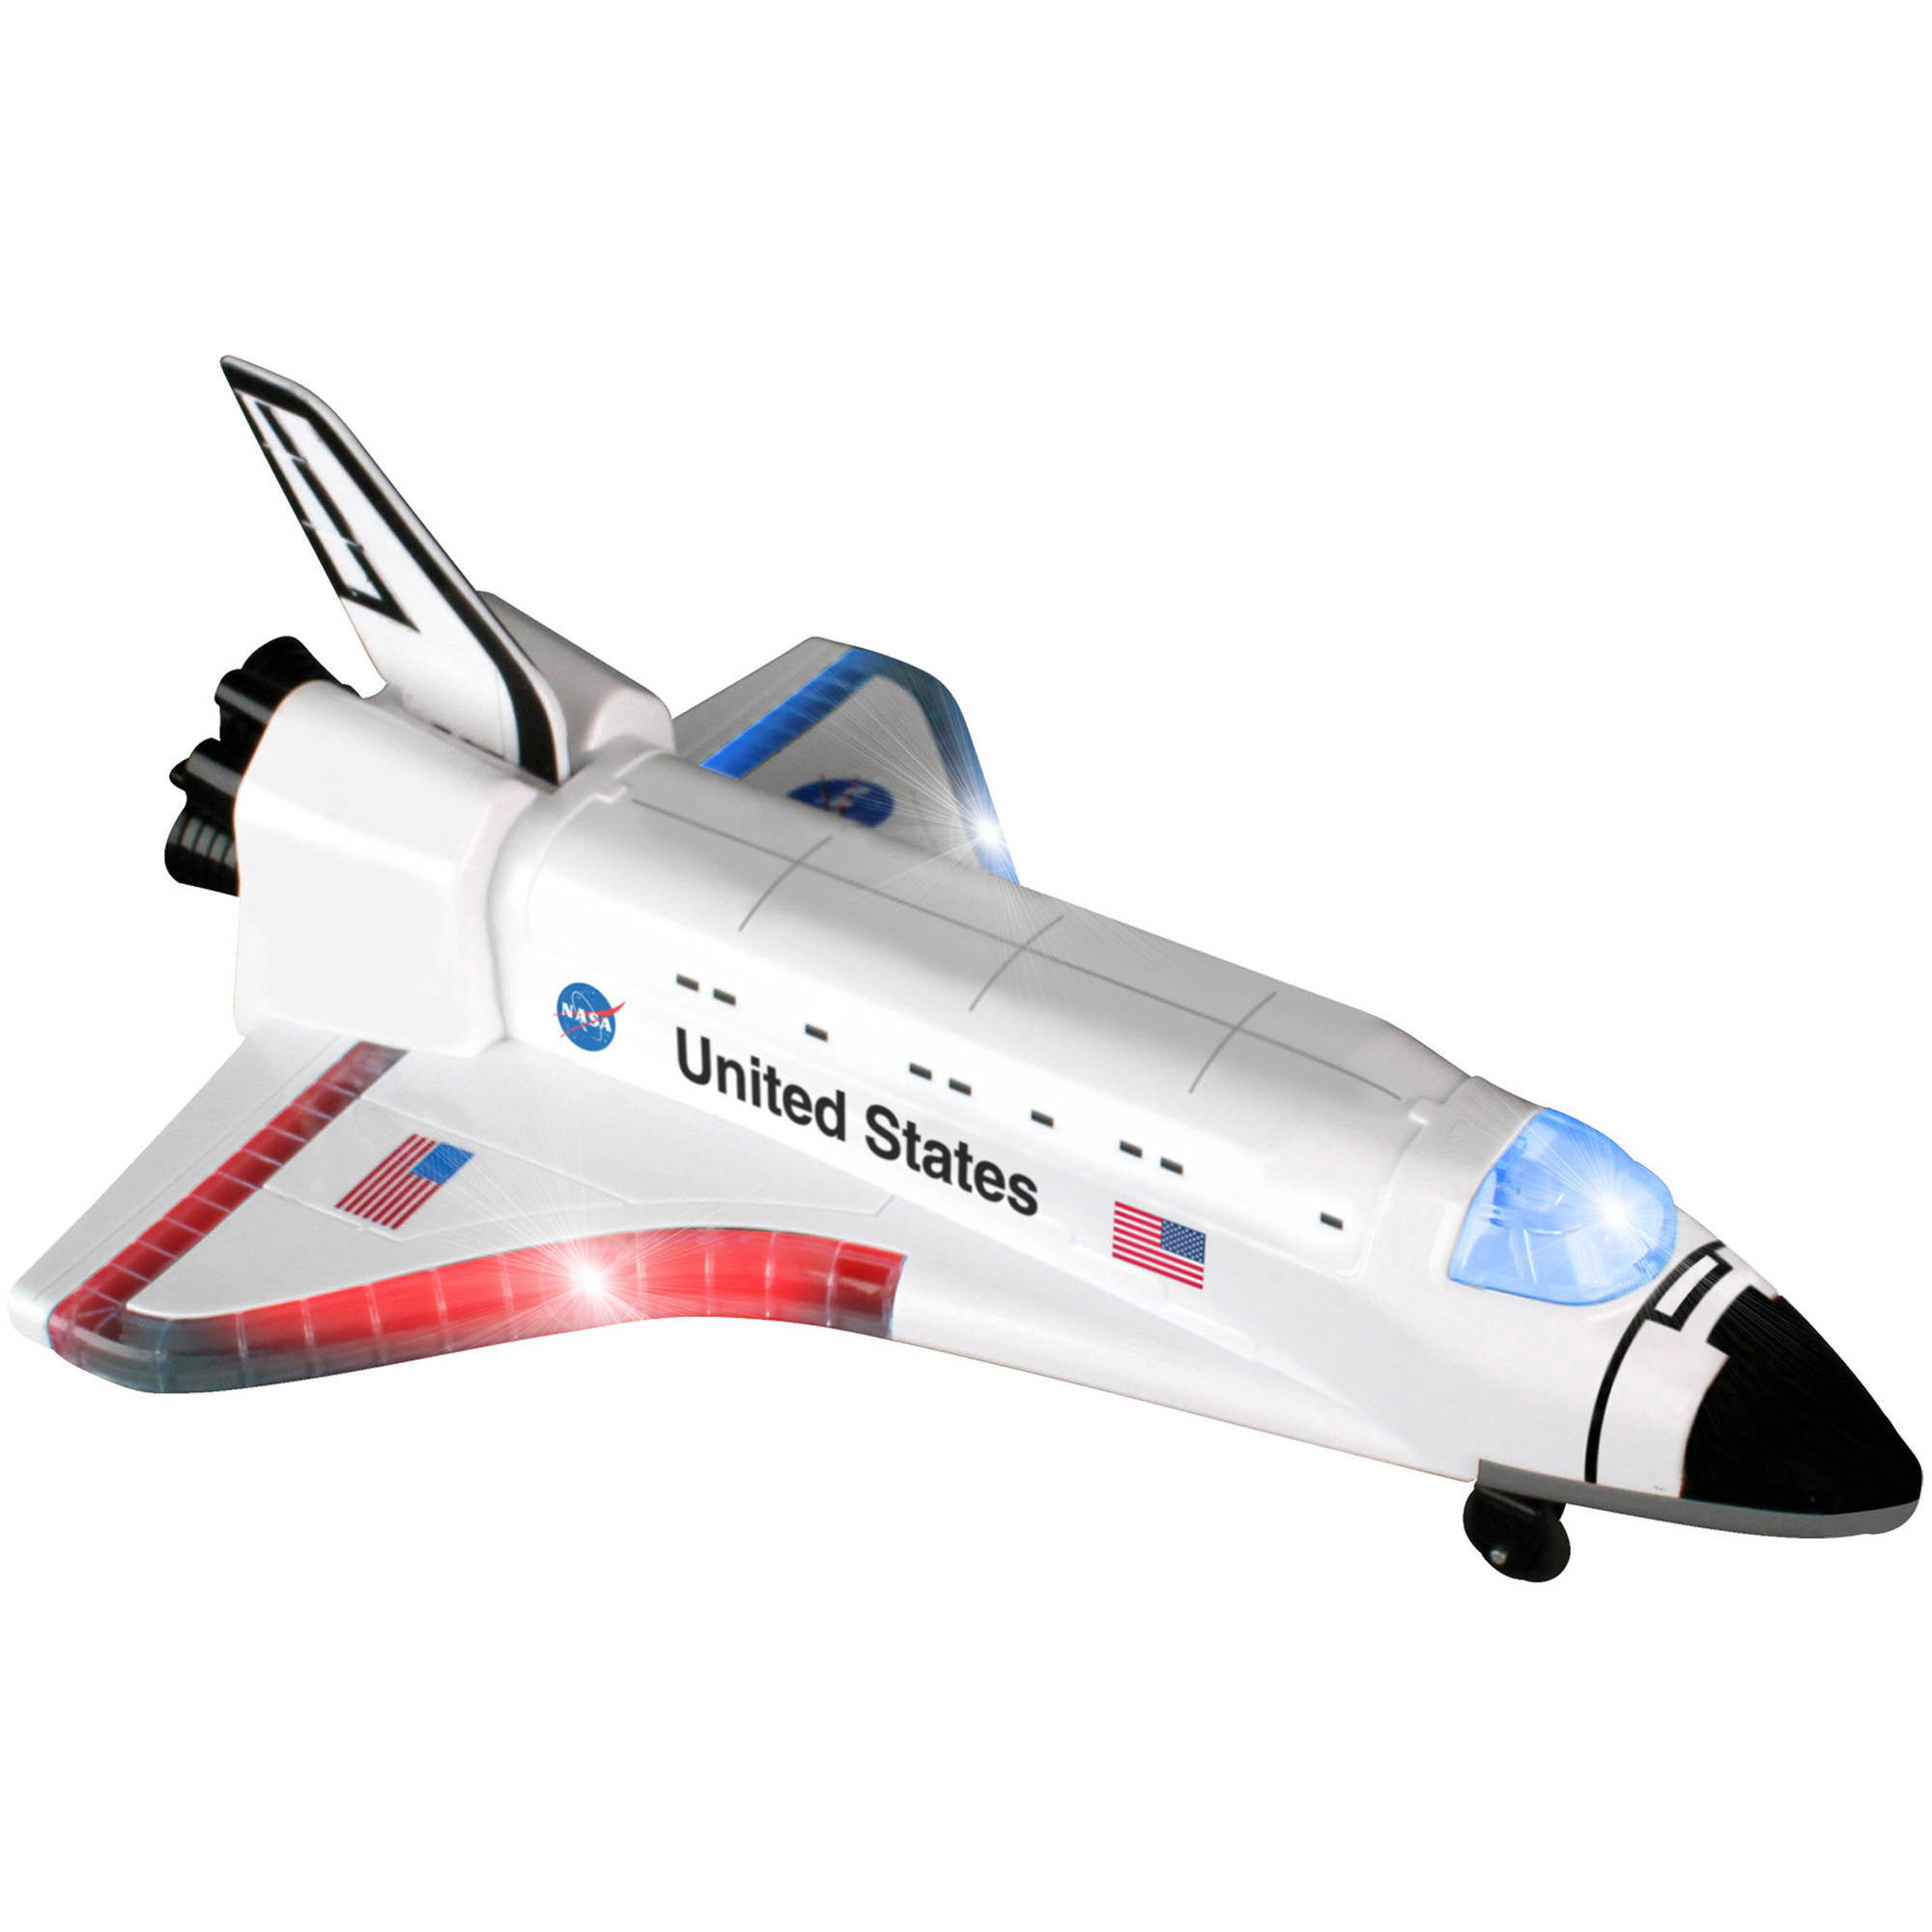 Daron Radio Control Space Shuttle with Lights and Sound by Daron